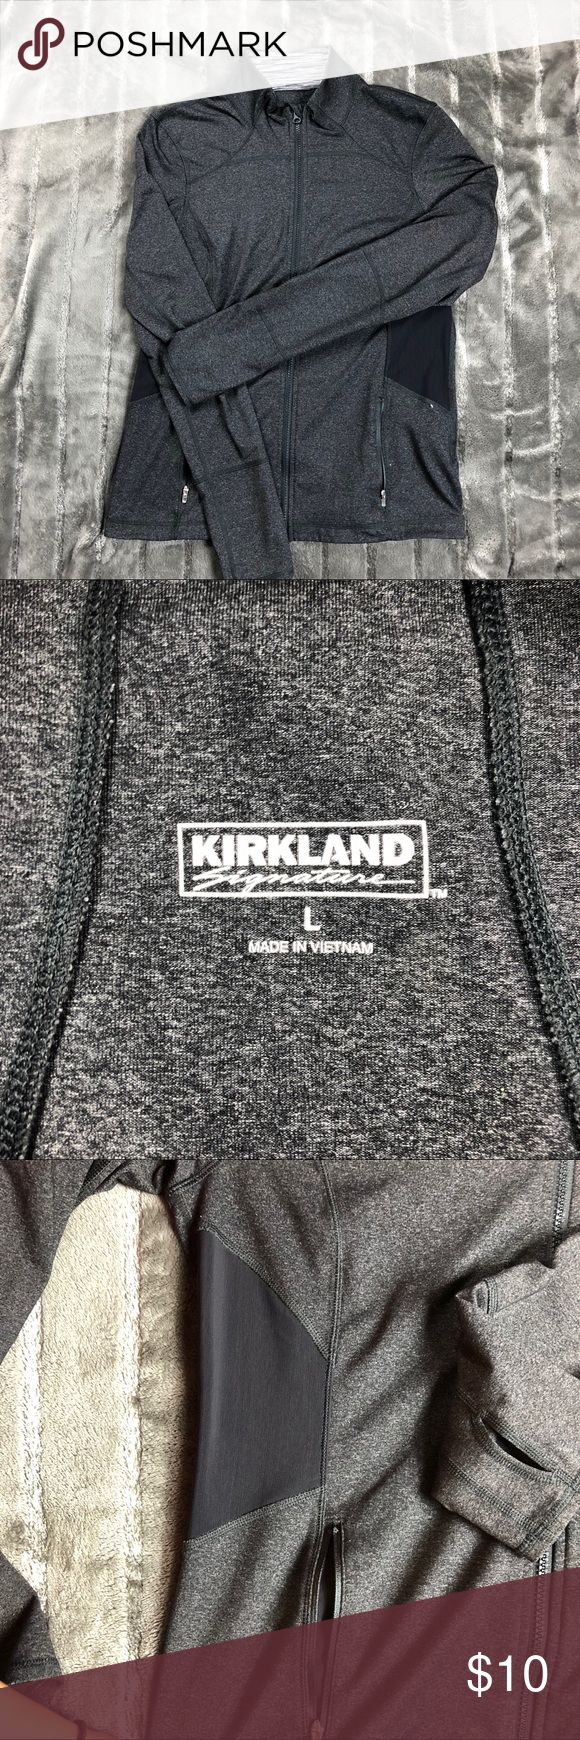 Kirkland Sweater Condition: Very good. No stains, rips, or odors. Minimal signs of previously being worn. Please view listing pictures & additional questions are always welcomed. All items are honestly presented to the best of my knowledge, and are stored in a non-smoking environment. No returns kirkland Sweaters